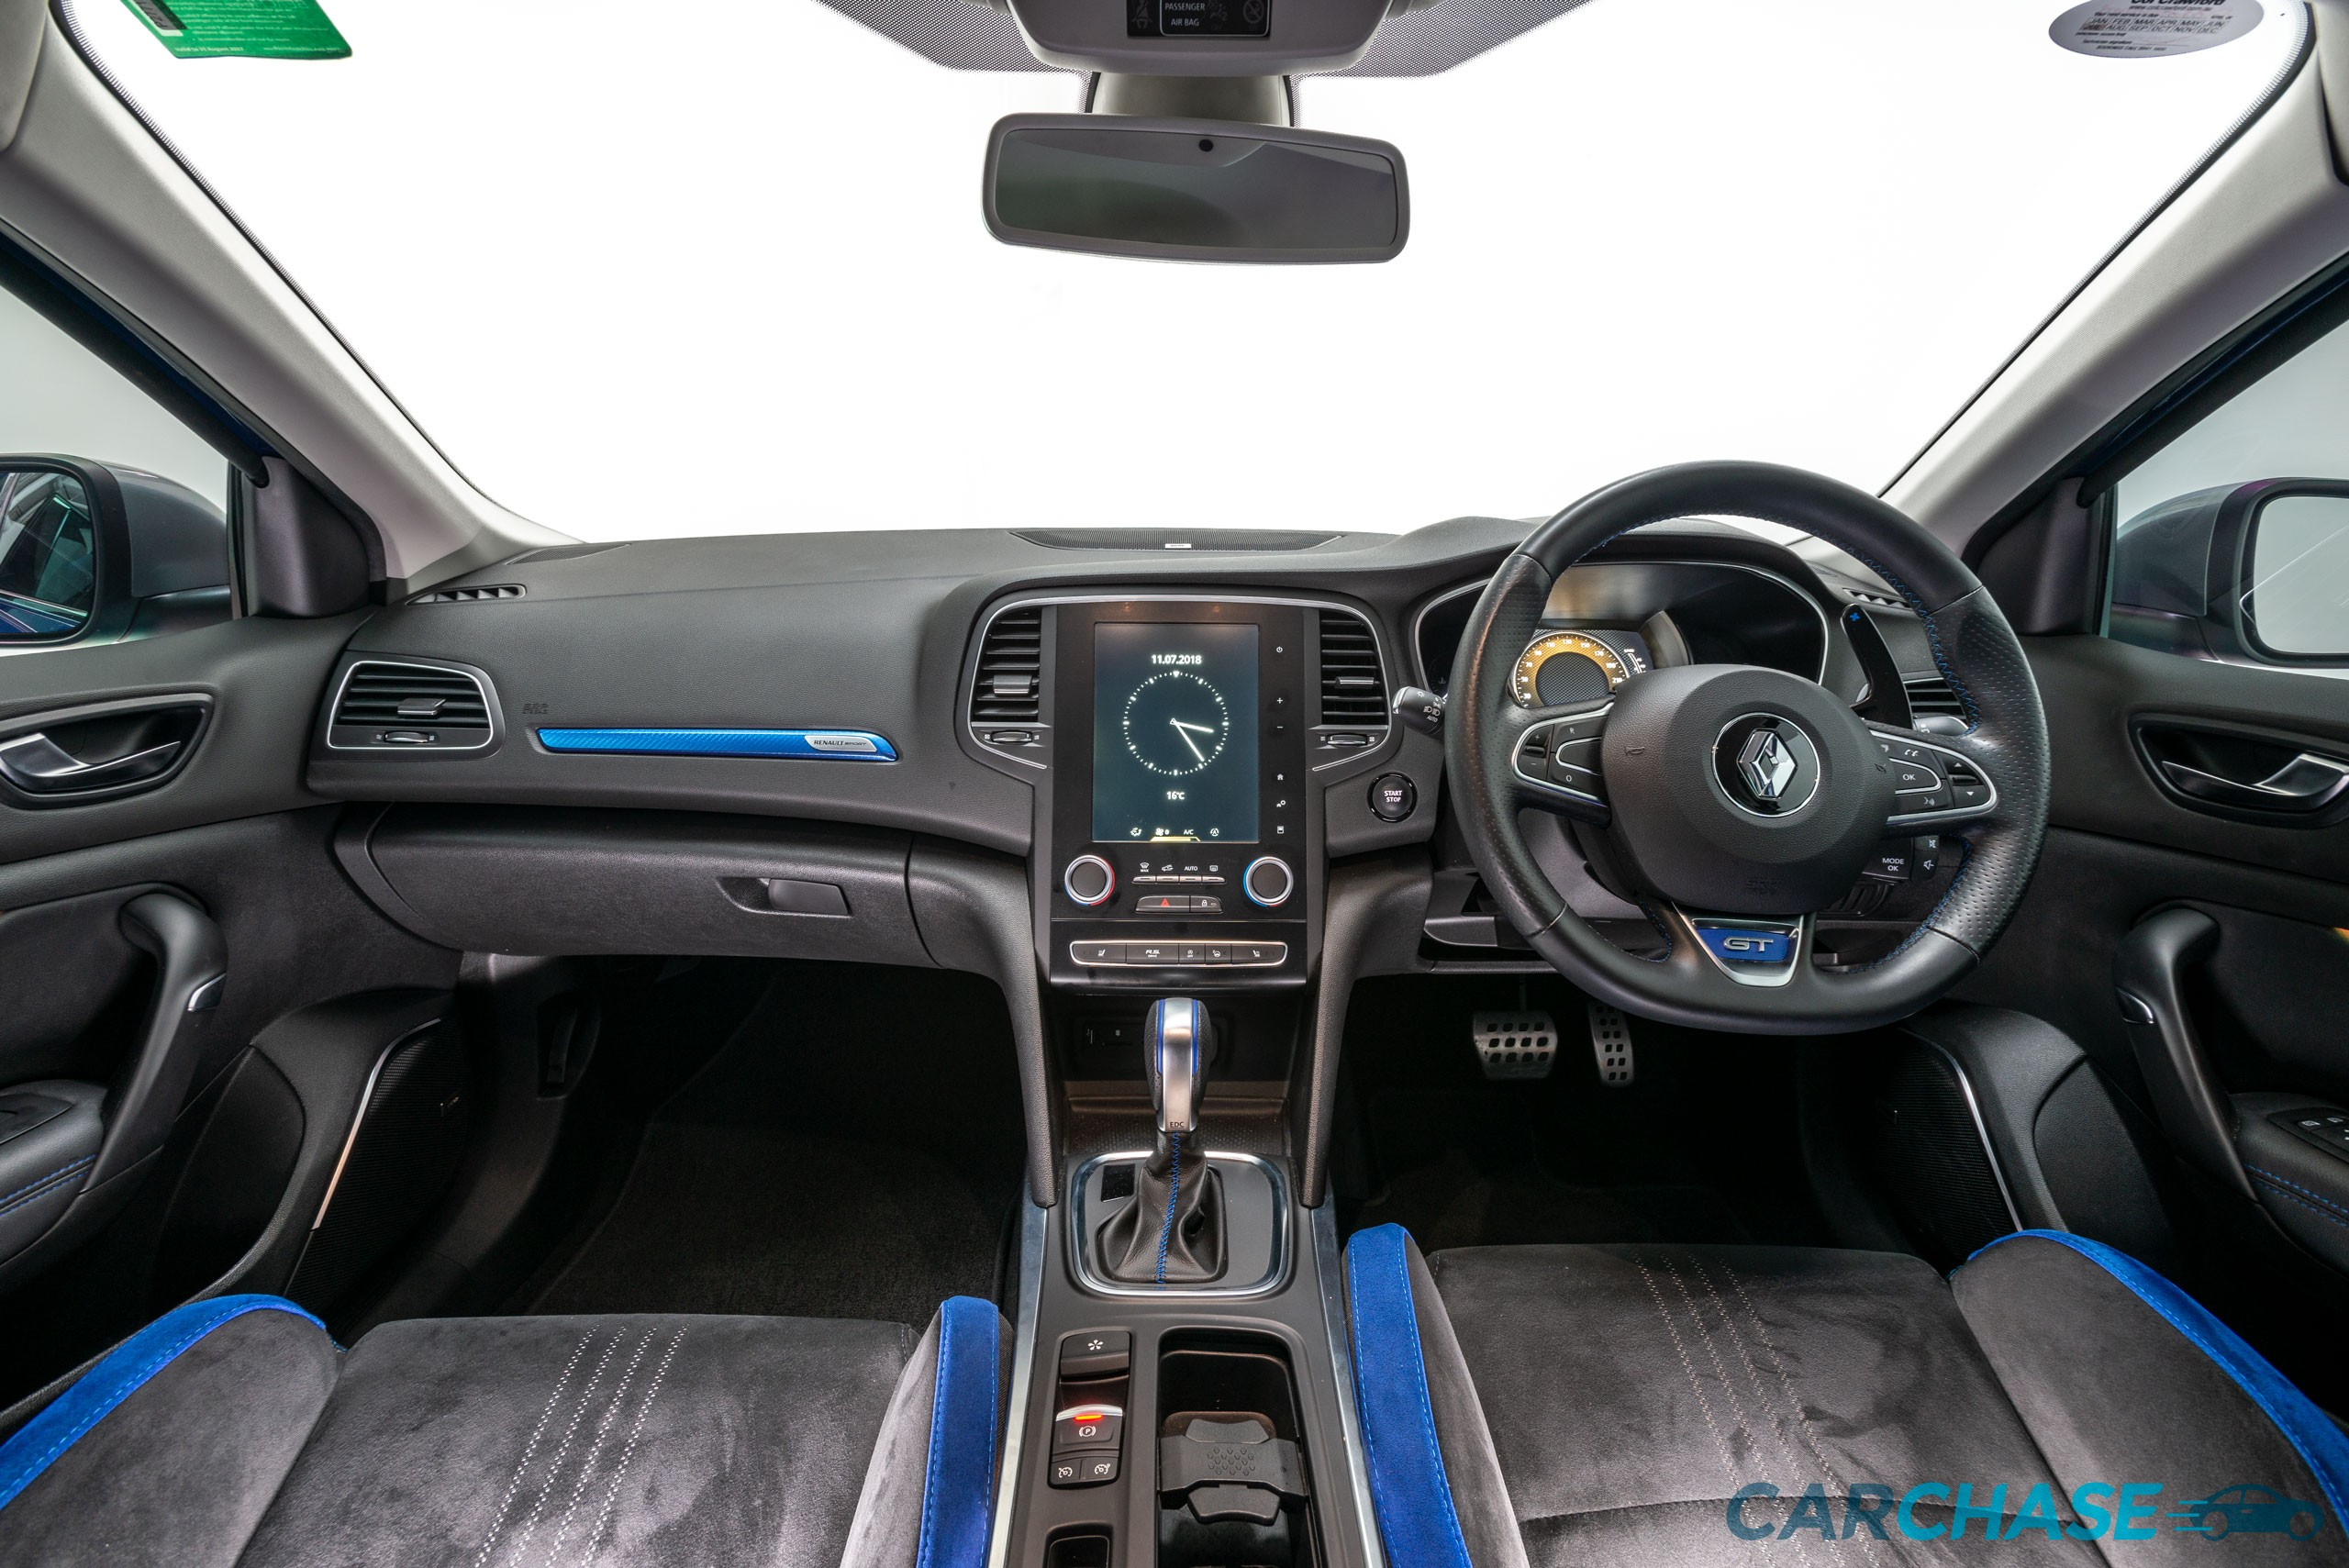 Image of dashboard profile of 2016 Renault Megane GT